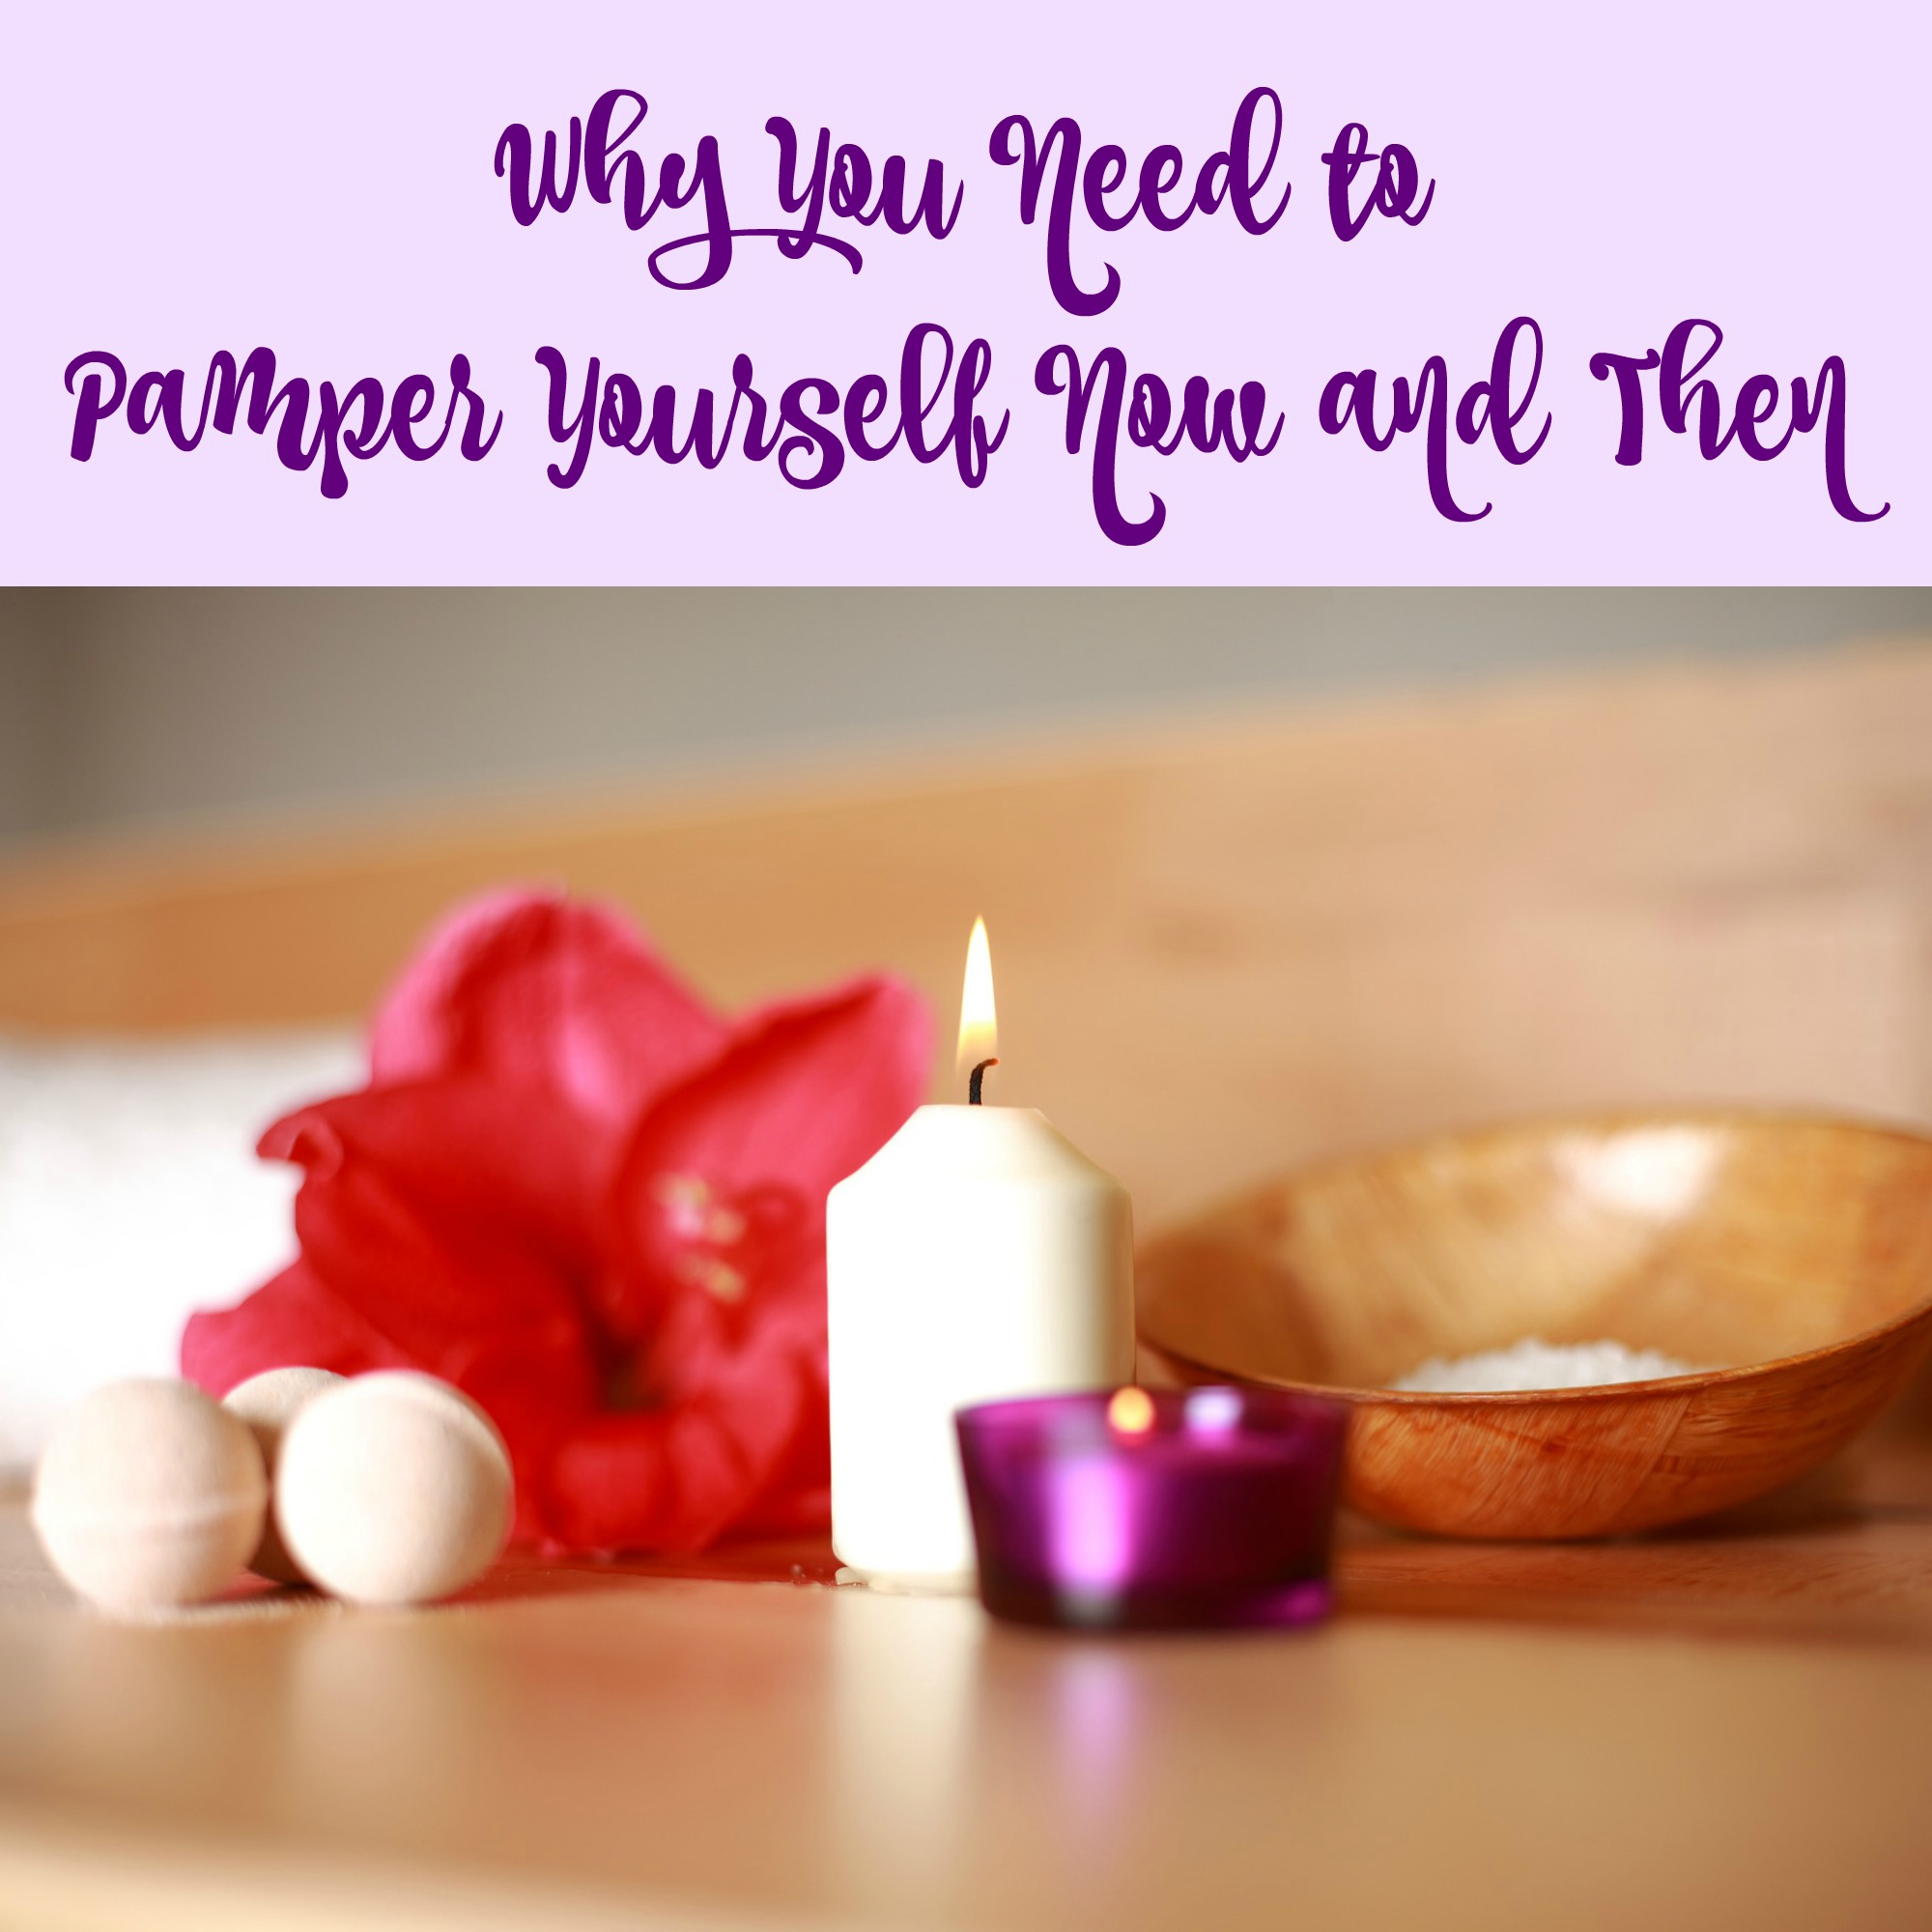 Why You Need to Pamper Yourself Now and Then